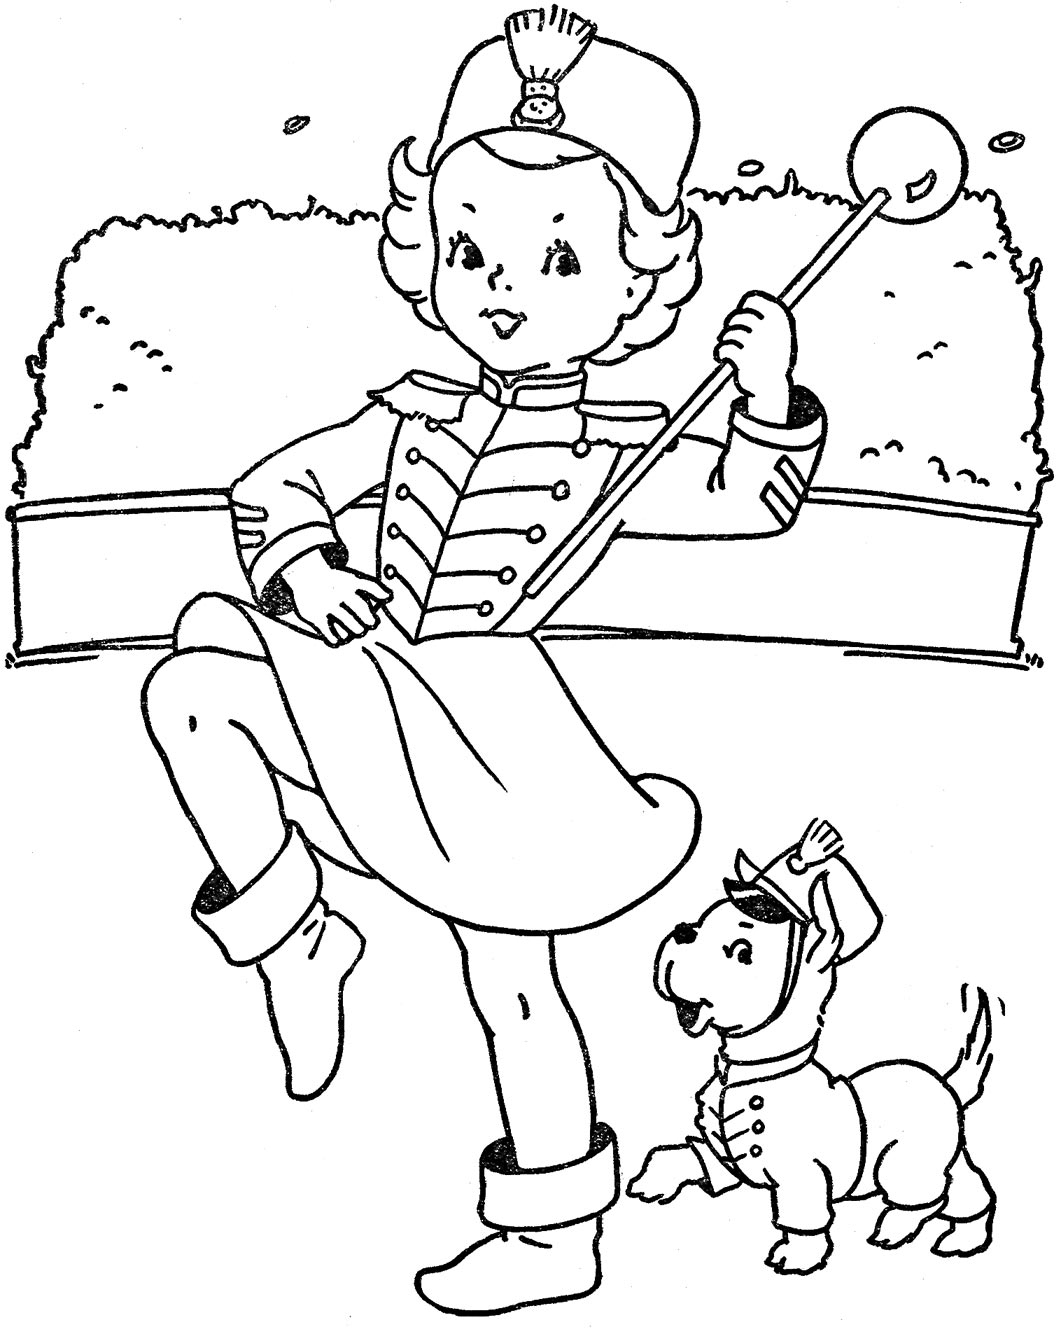 baton coloring pages - photo#4